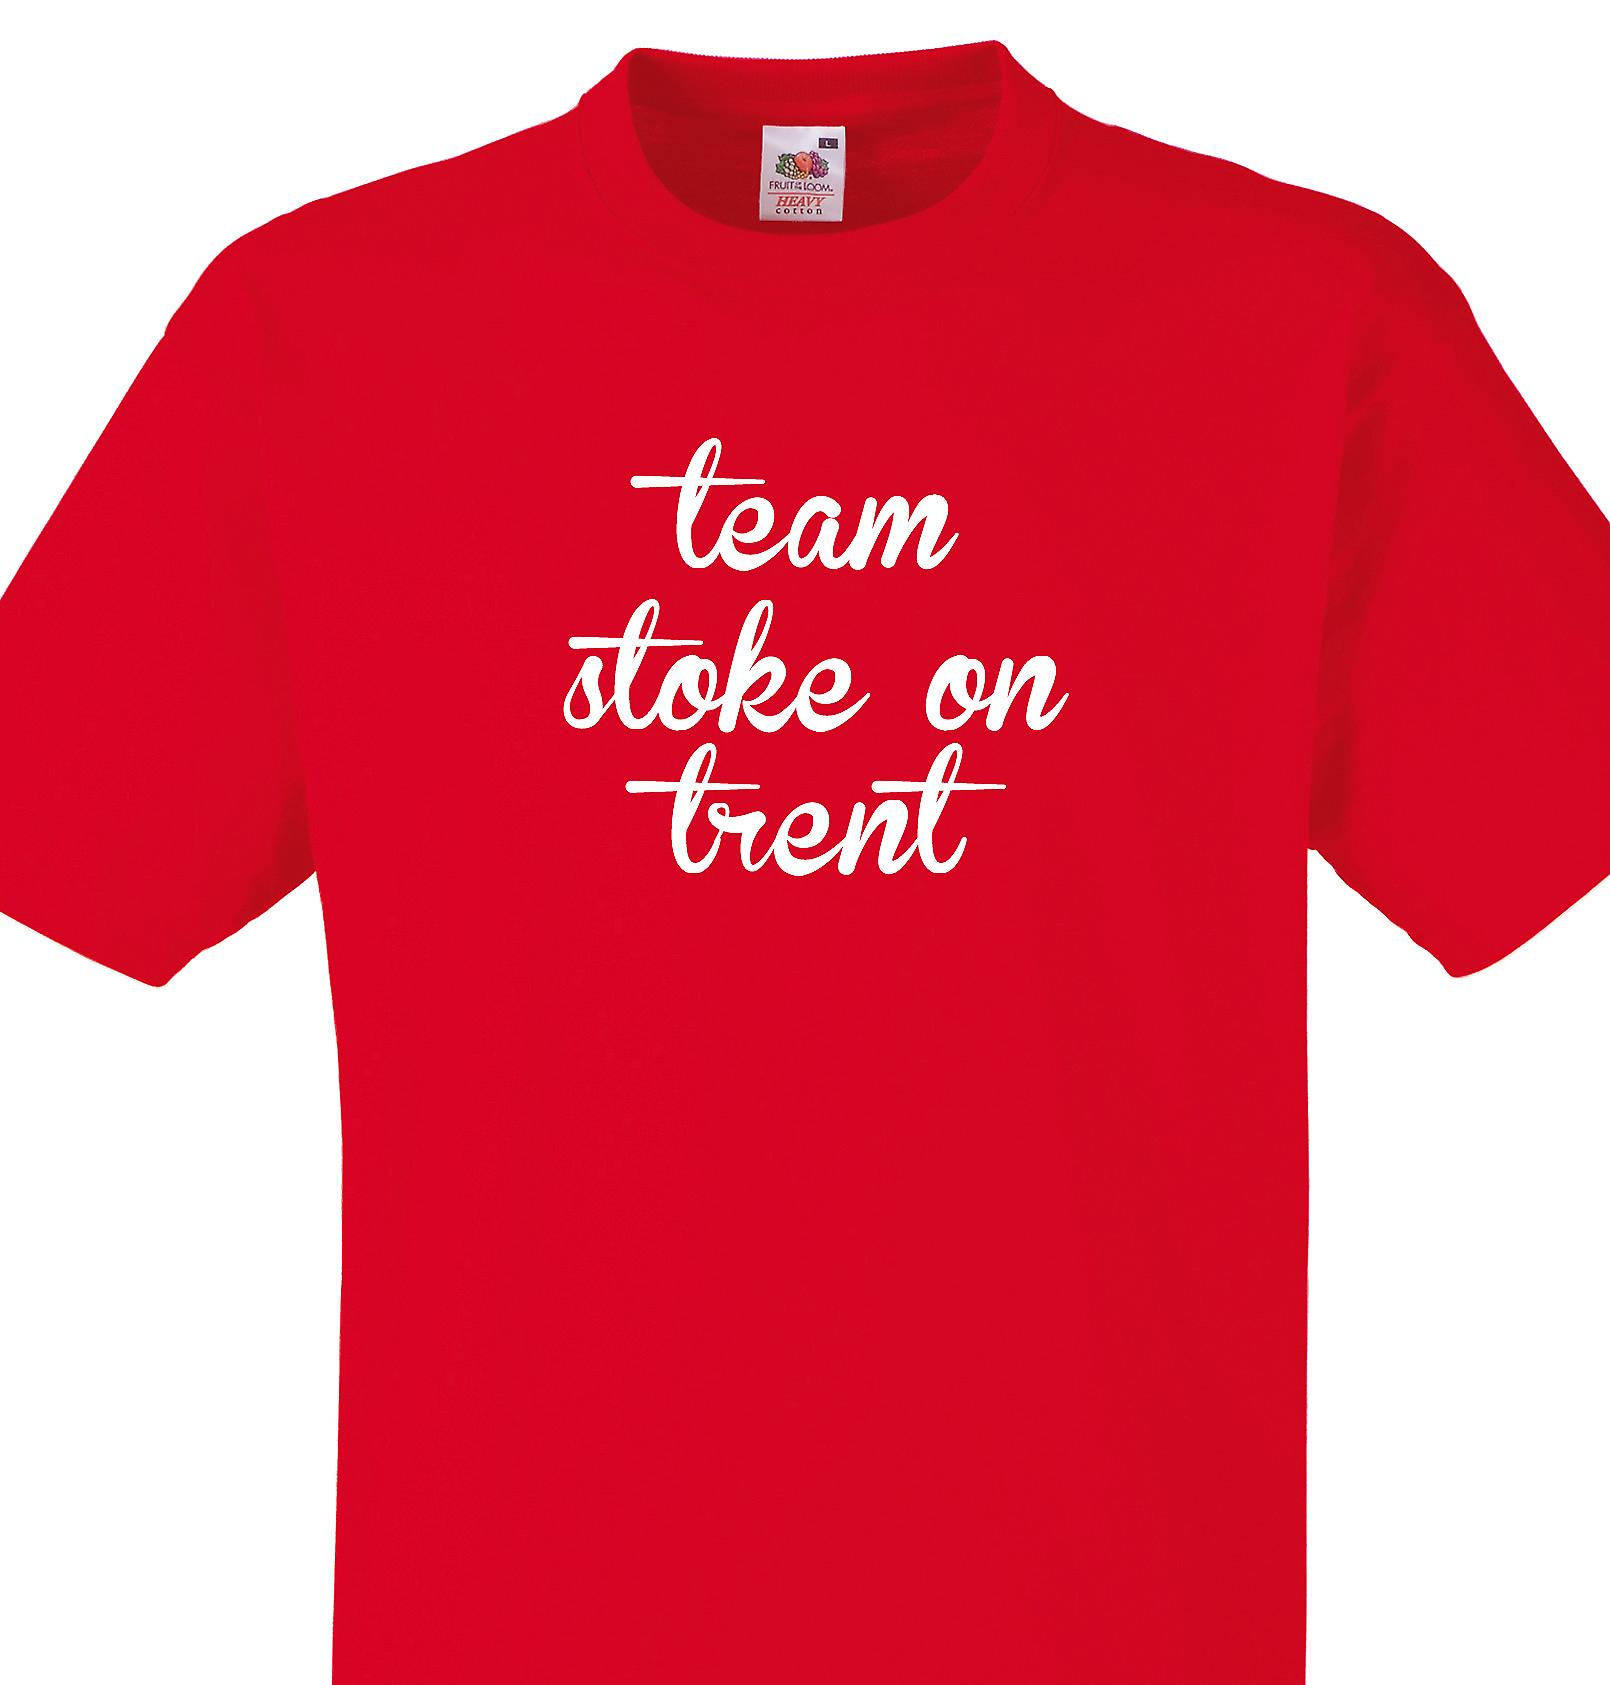 Team Stoke on trent Red T shirt